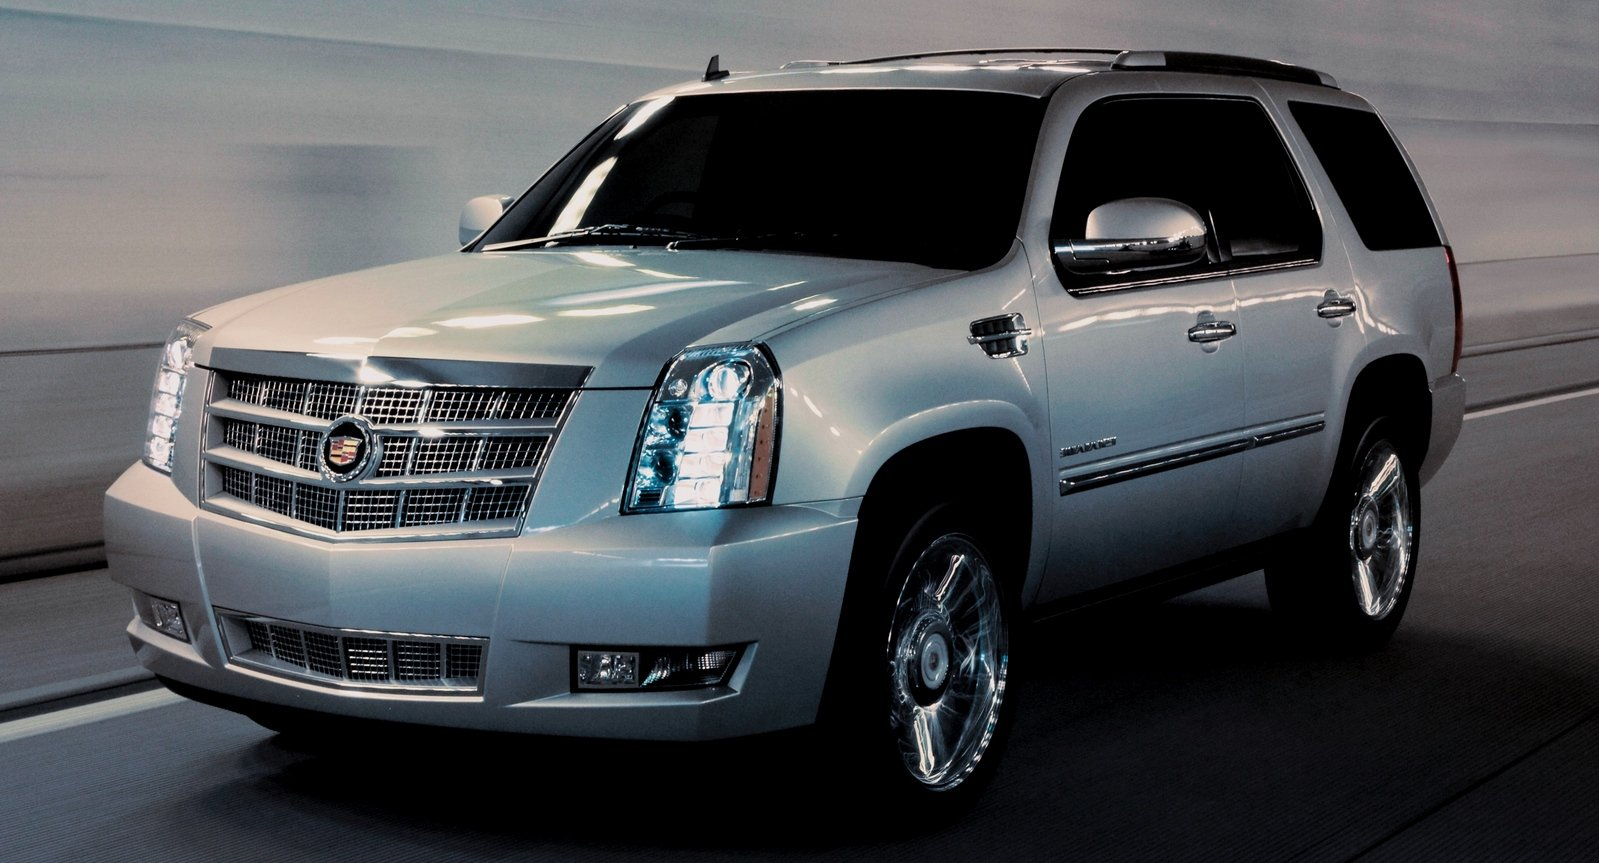 2014 cadillac escalade picture 515158 car review top. Black Bedroom Furniture Sets. Home Design Ideas